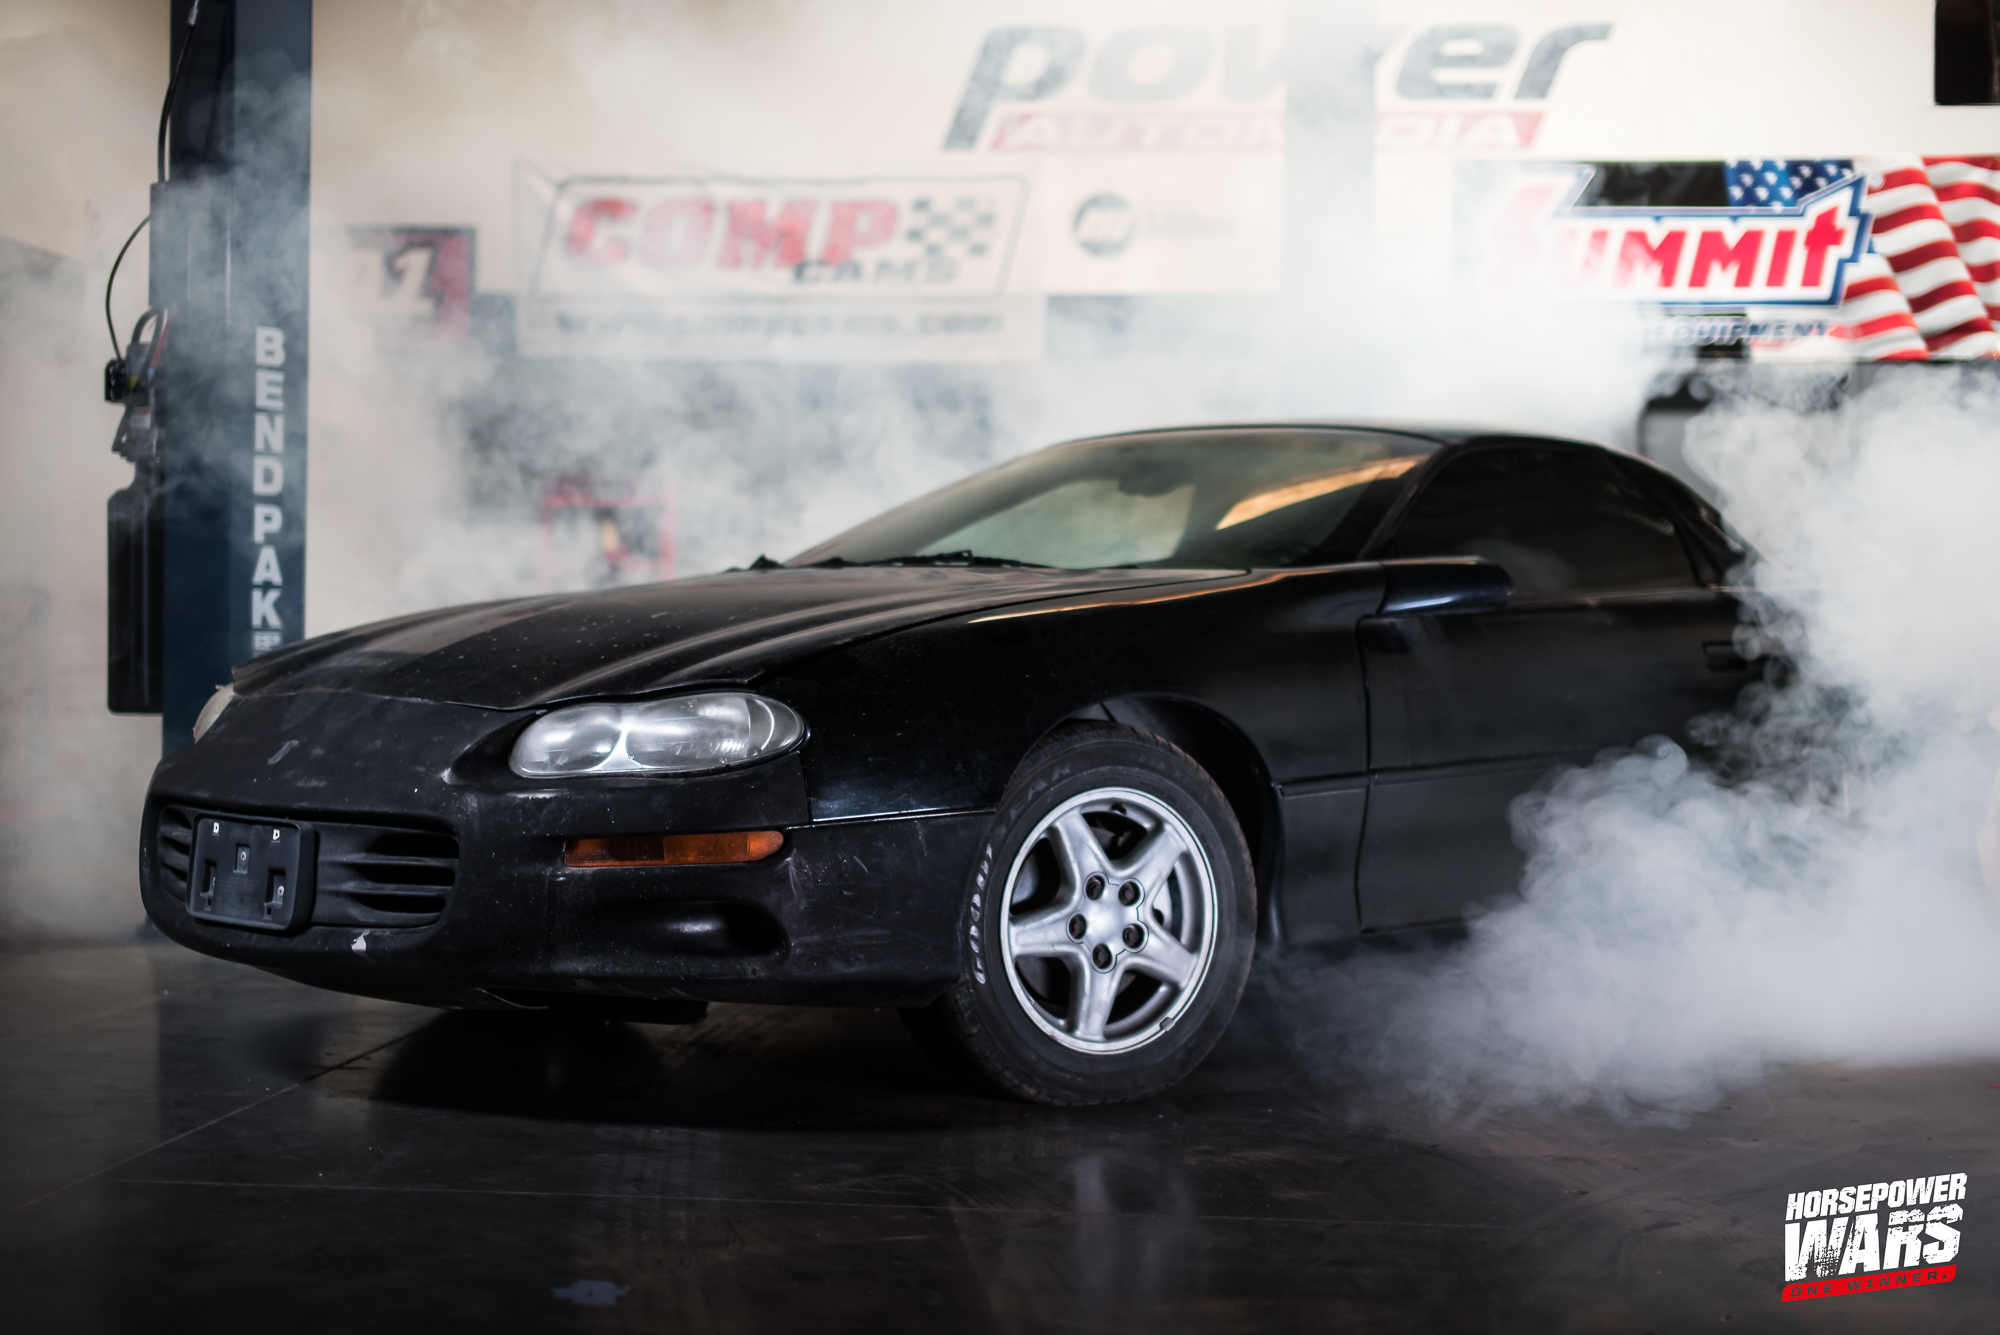 The Top 10 Finalists For The Horsepower Wars $10K Drag